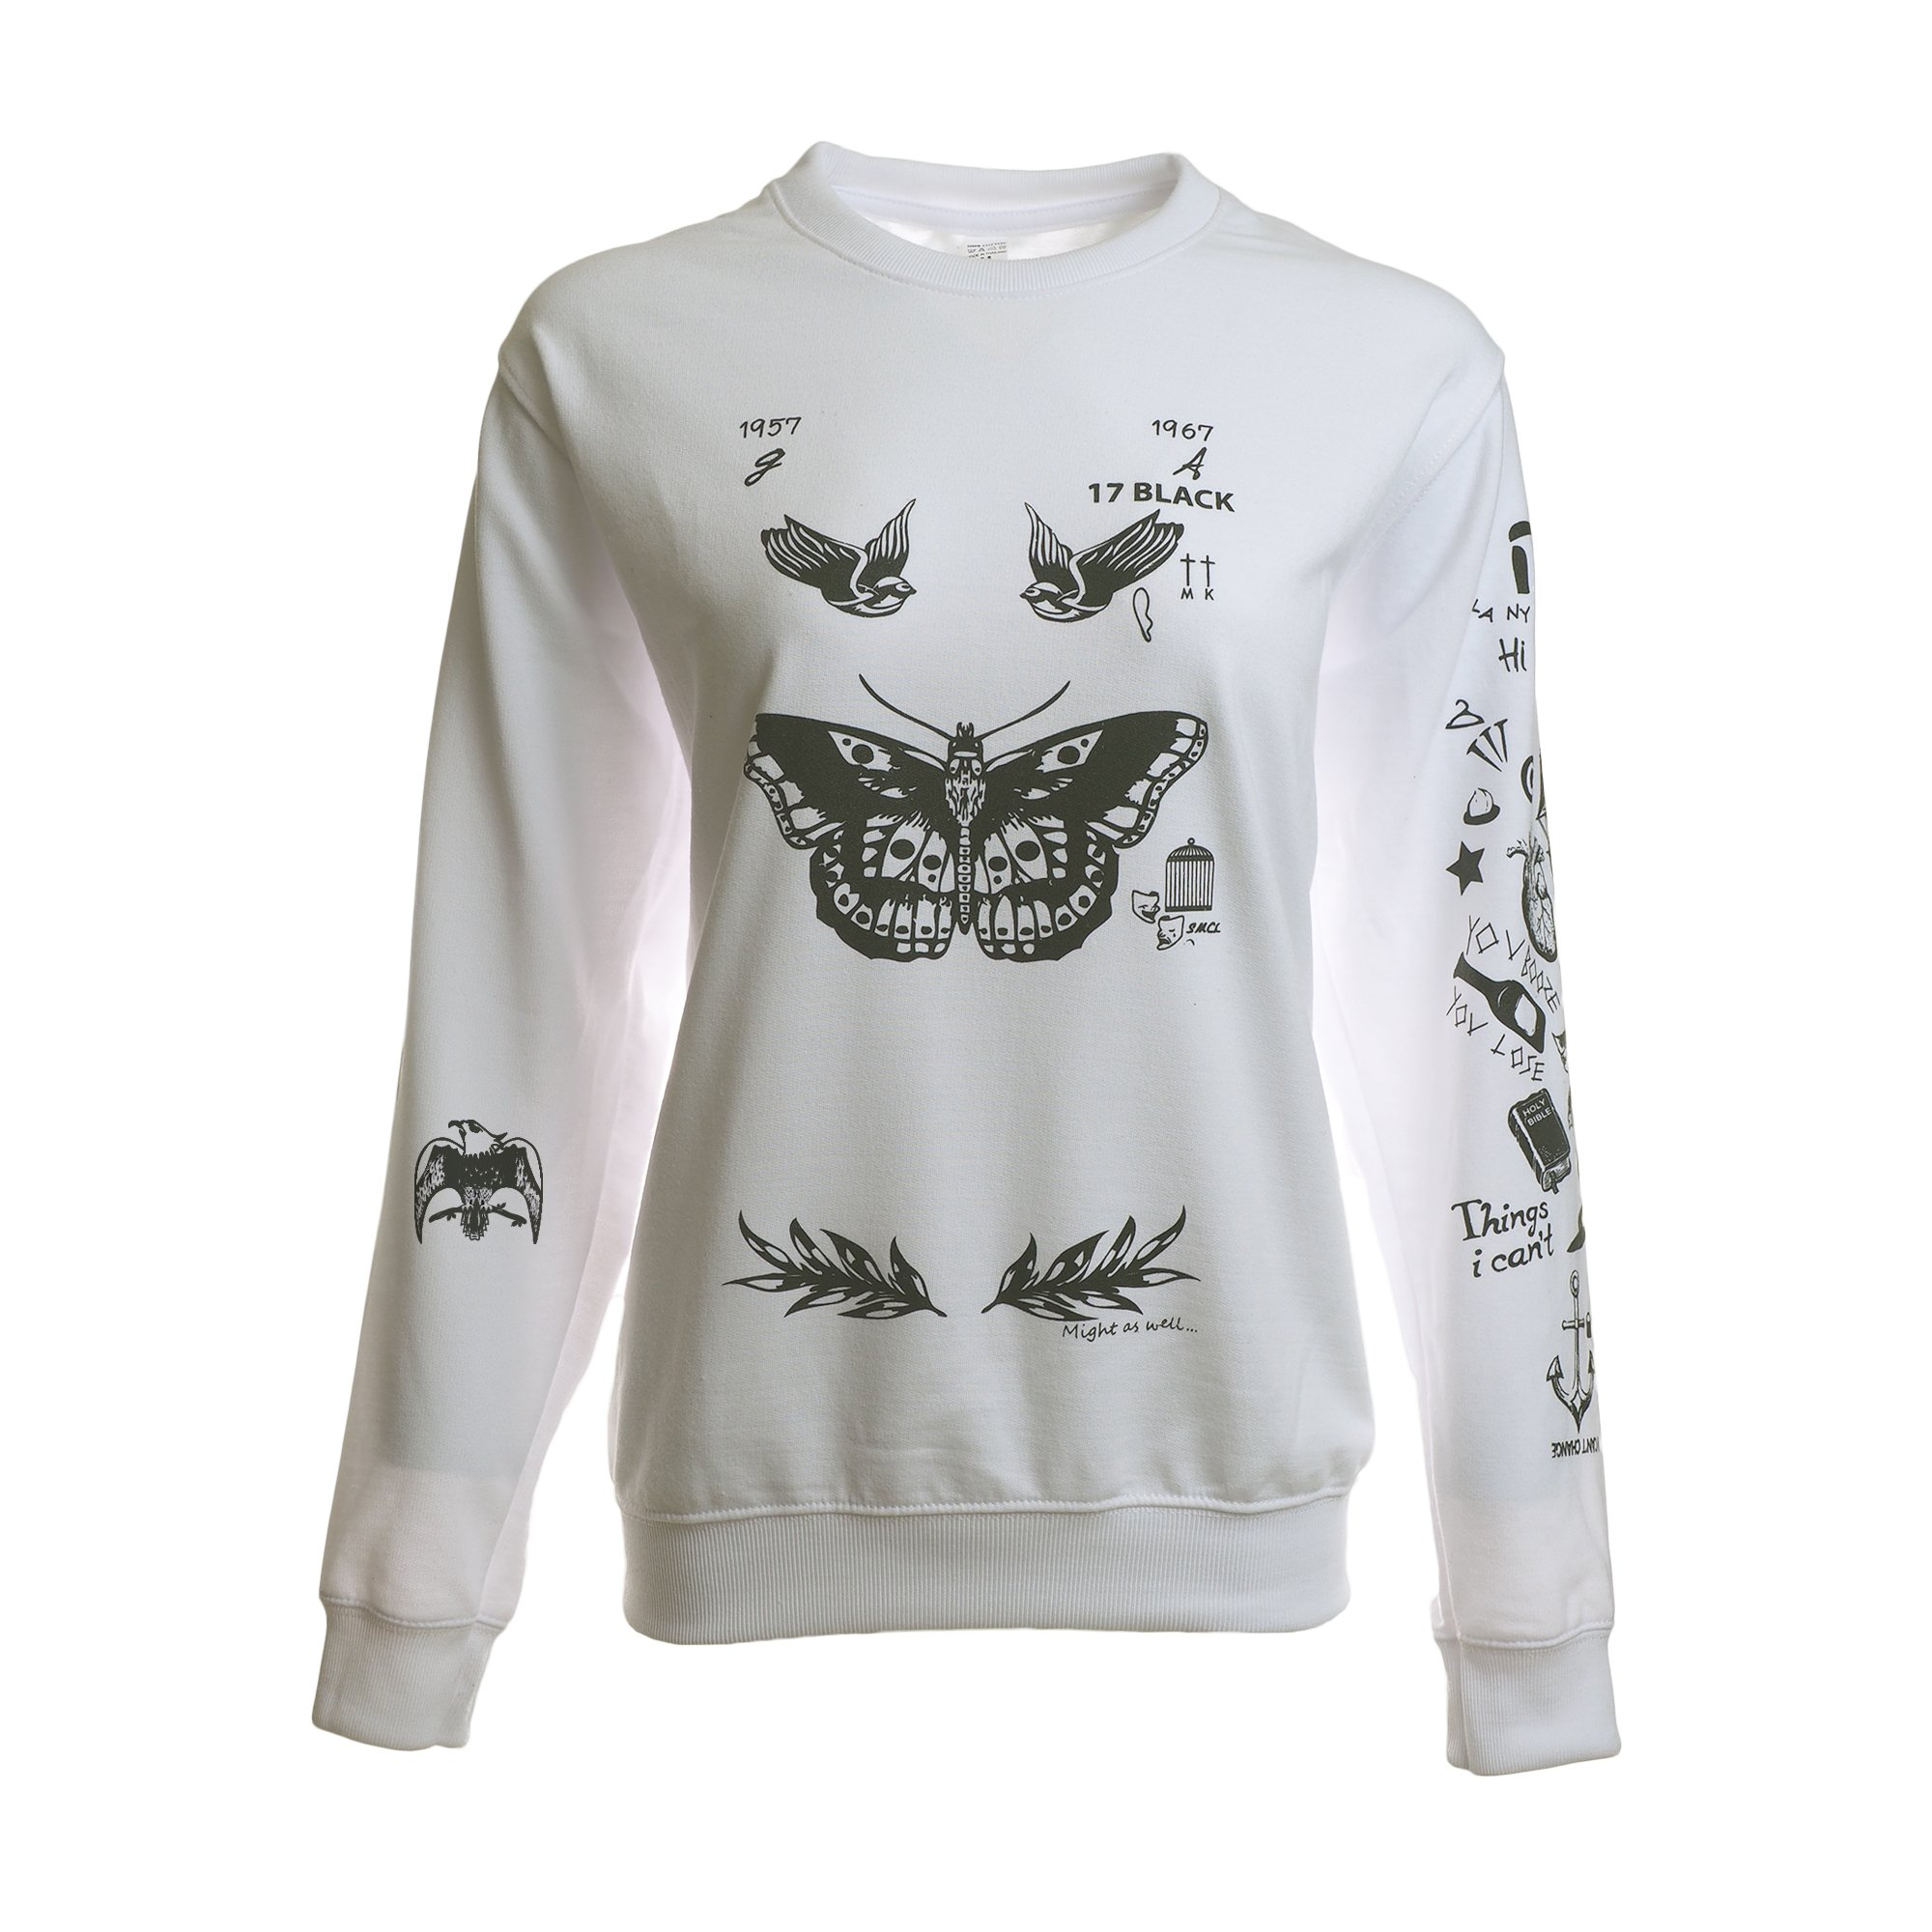 Noonew Women's Butterfly Tattoos Sweatshirt White X-Large Shirt